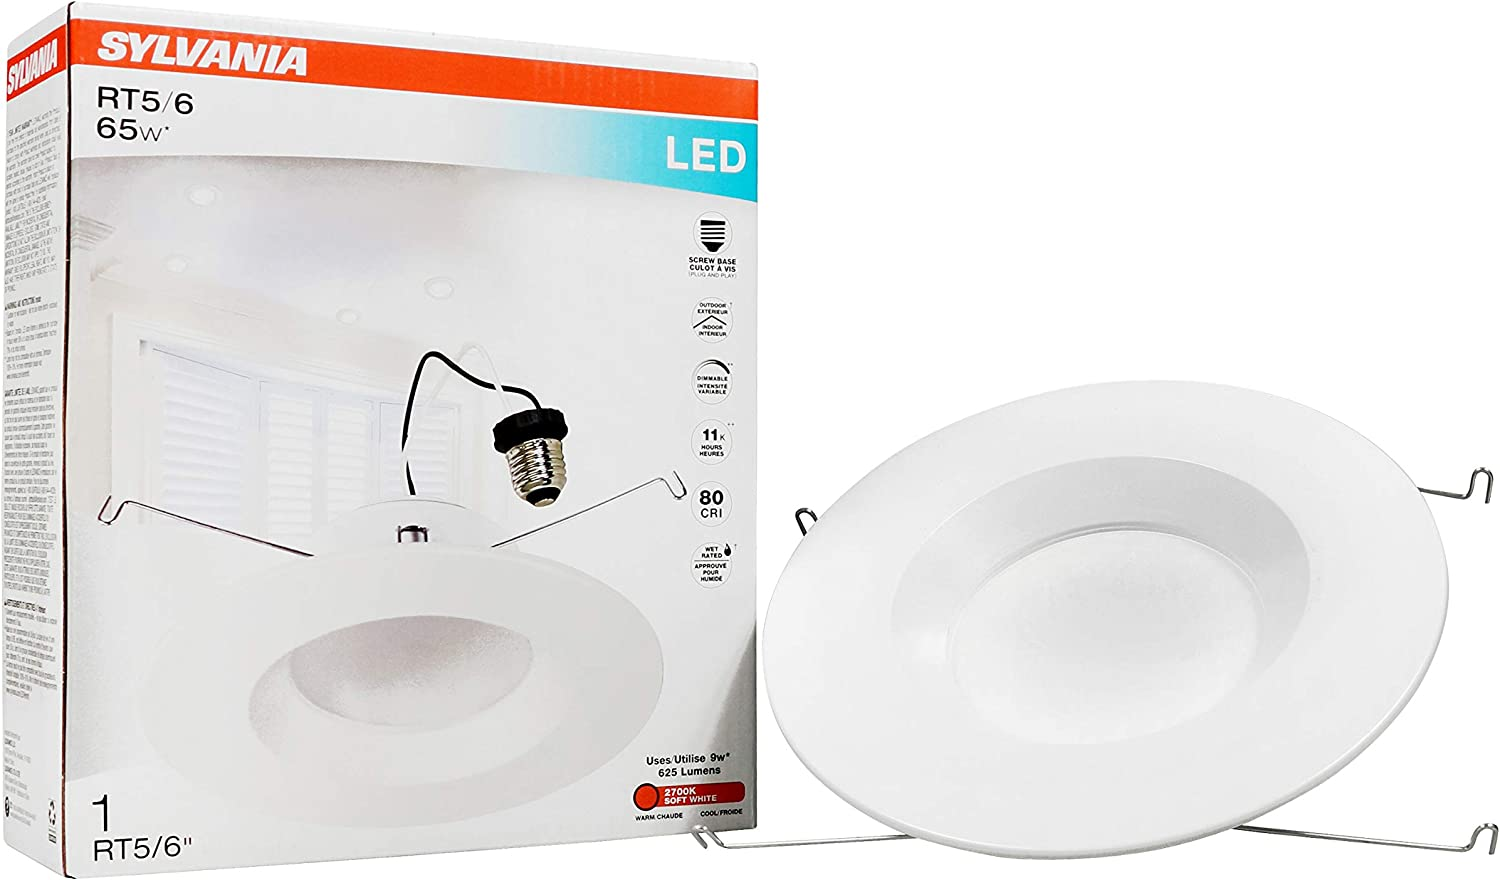 LEDVANCE 74405 LED Bulb 65W Equivalent Warm White 3000K Contractor Series RT 5/6 Recessed Downlight Kit